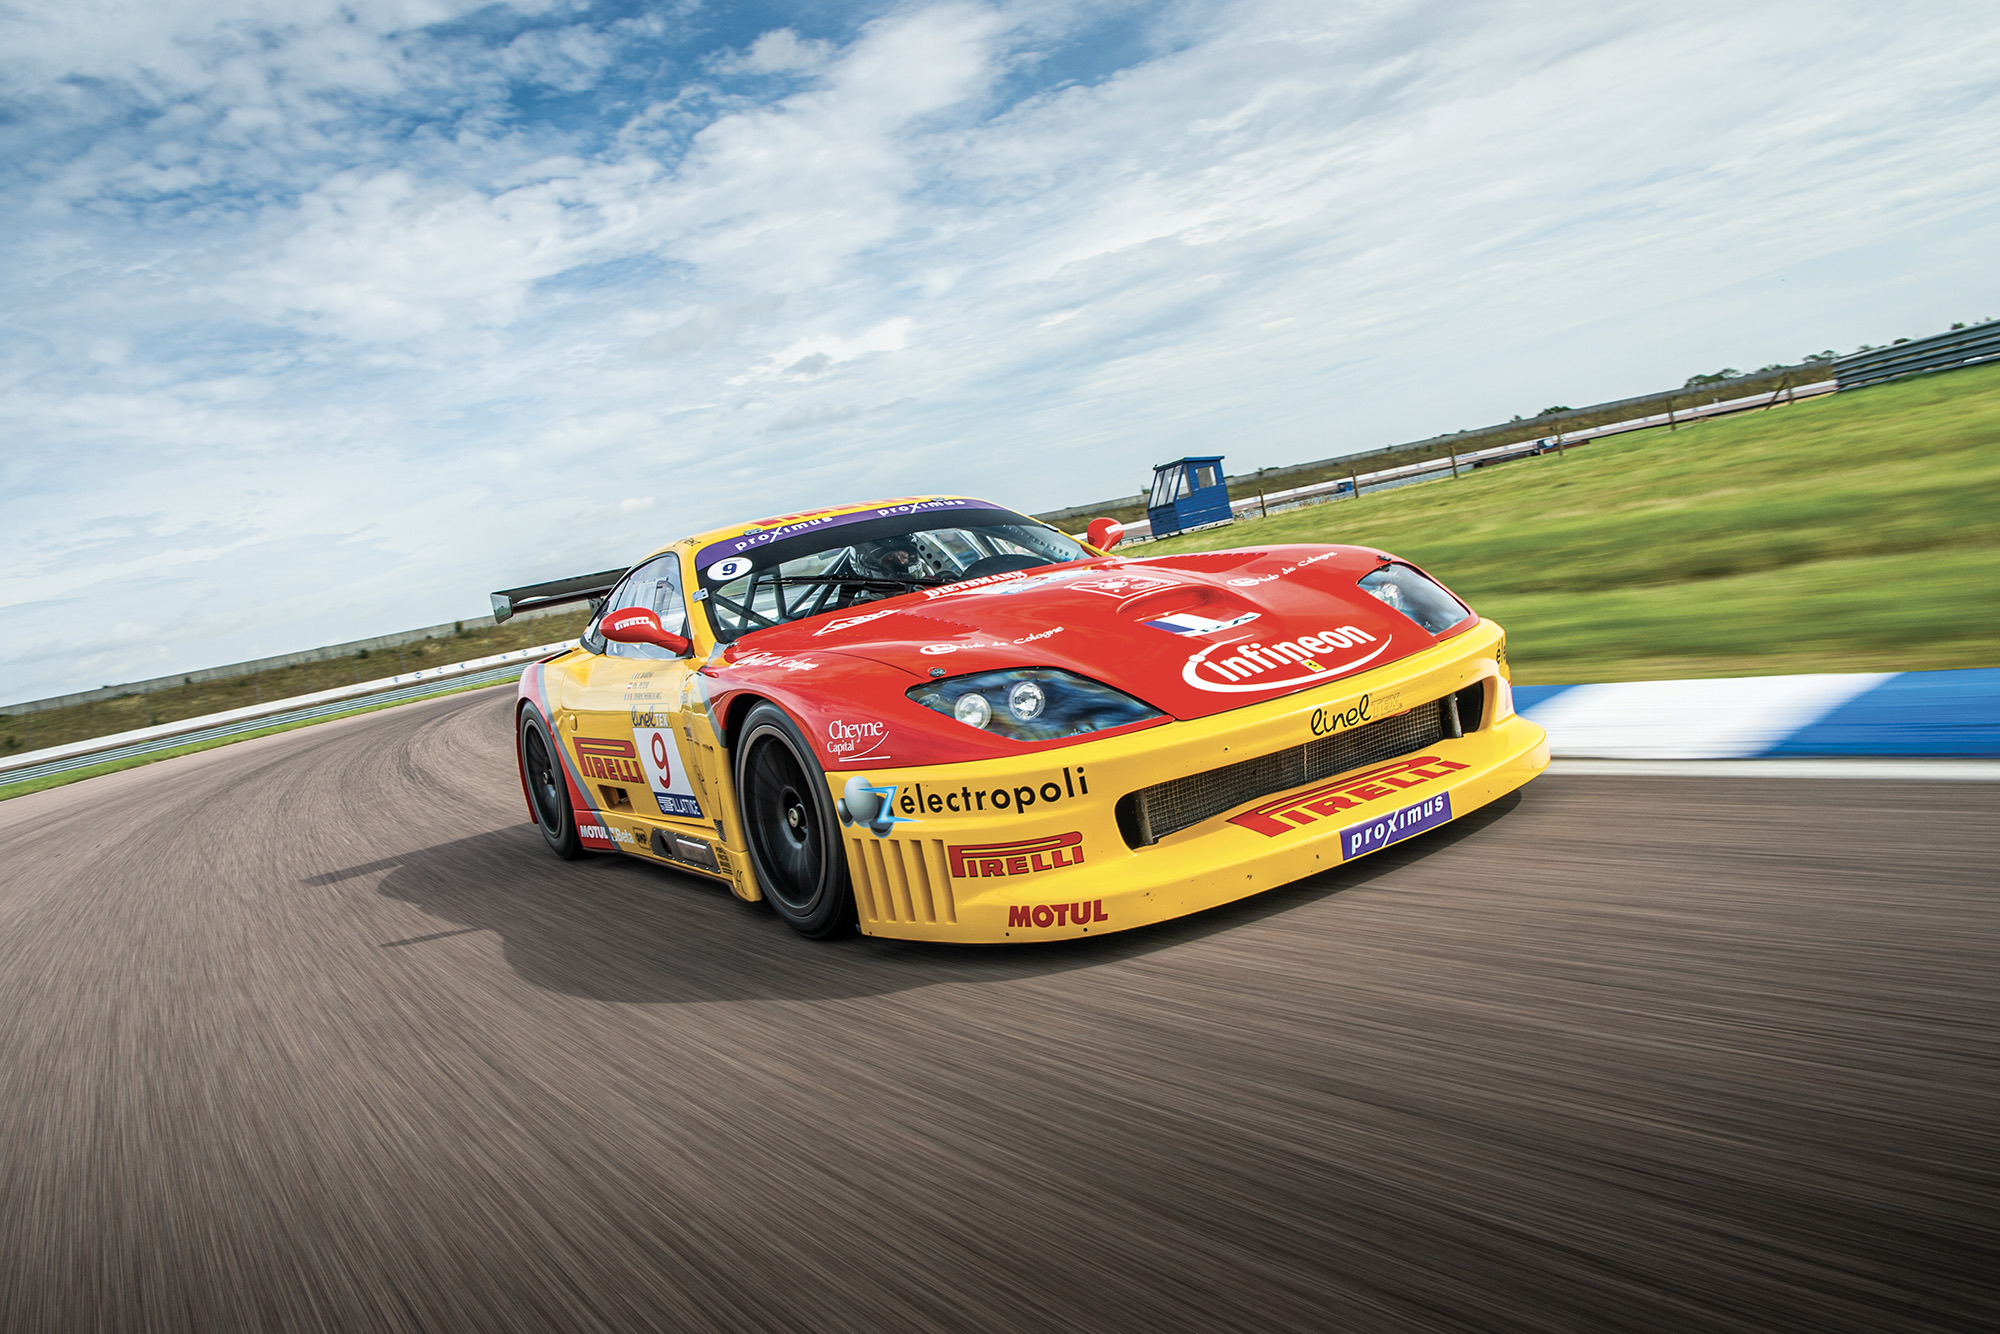 Video: V12 roars again at Rockingham — Ferrari's game-changing 550 Maranello GT1